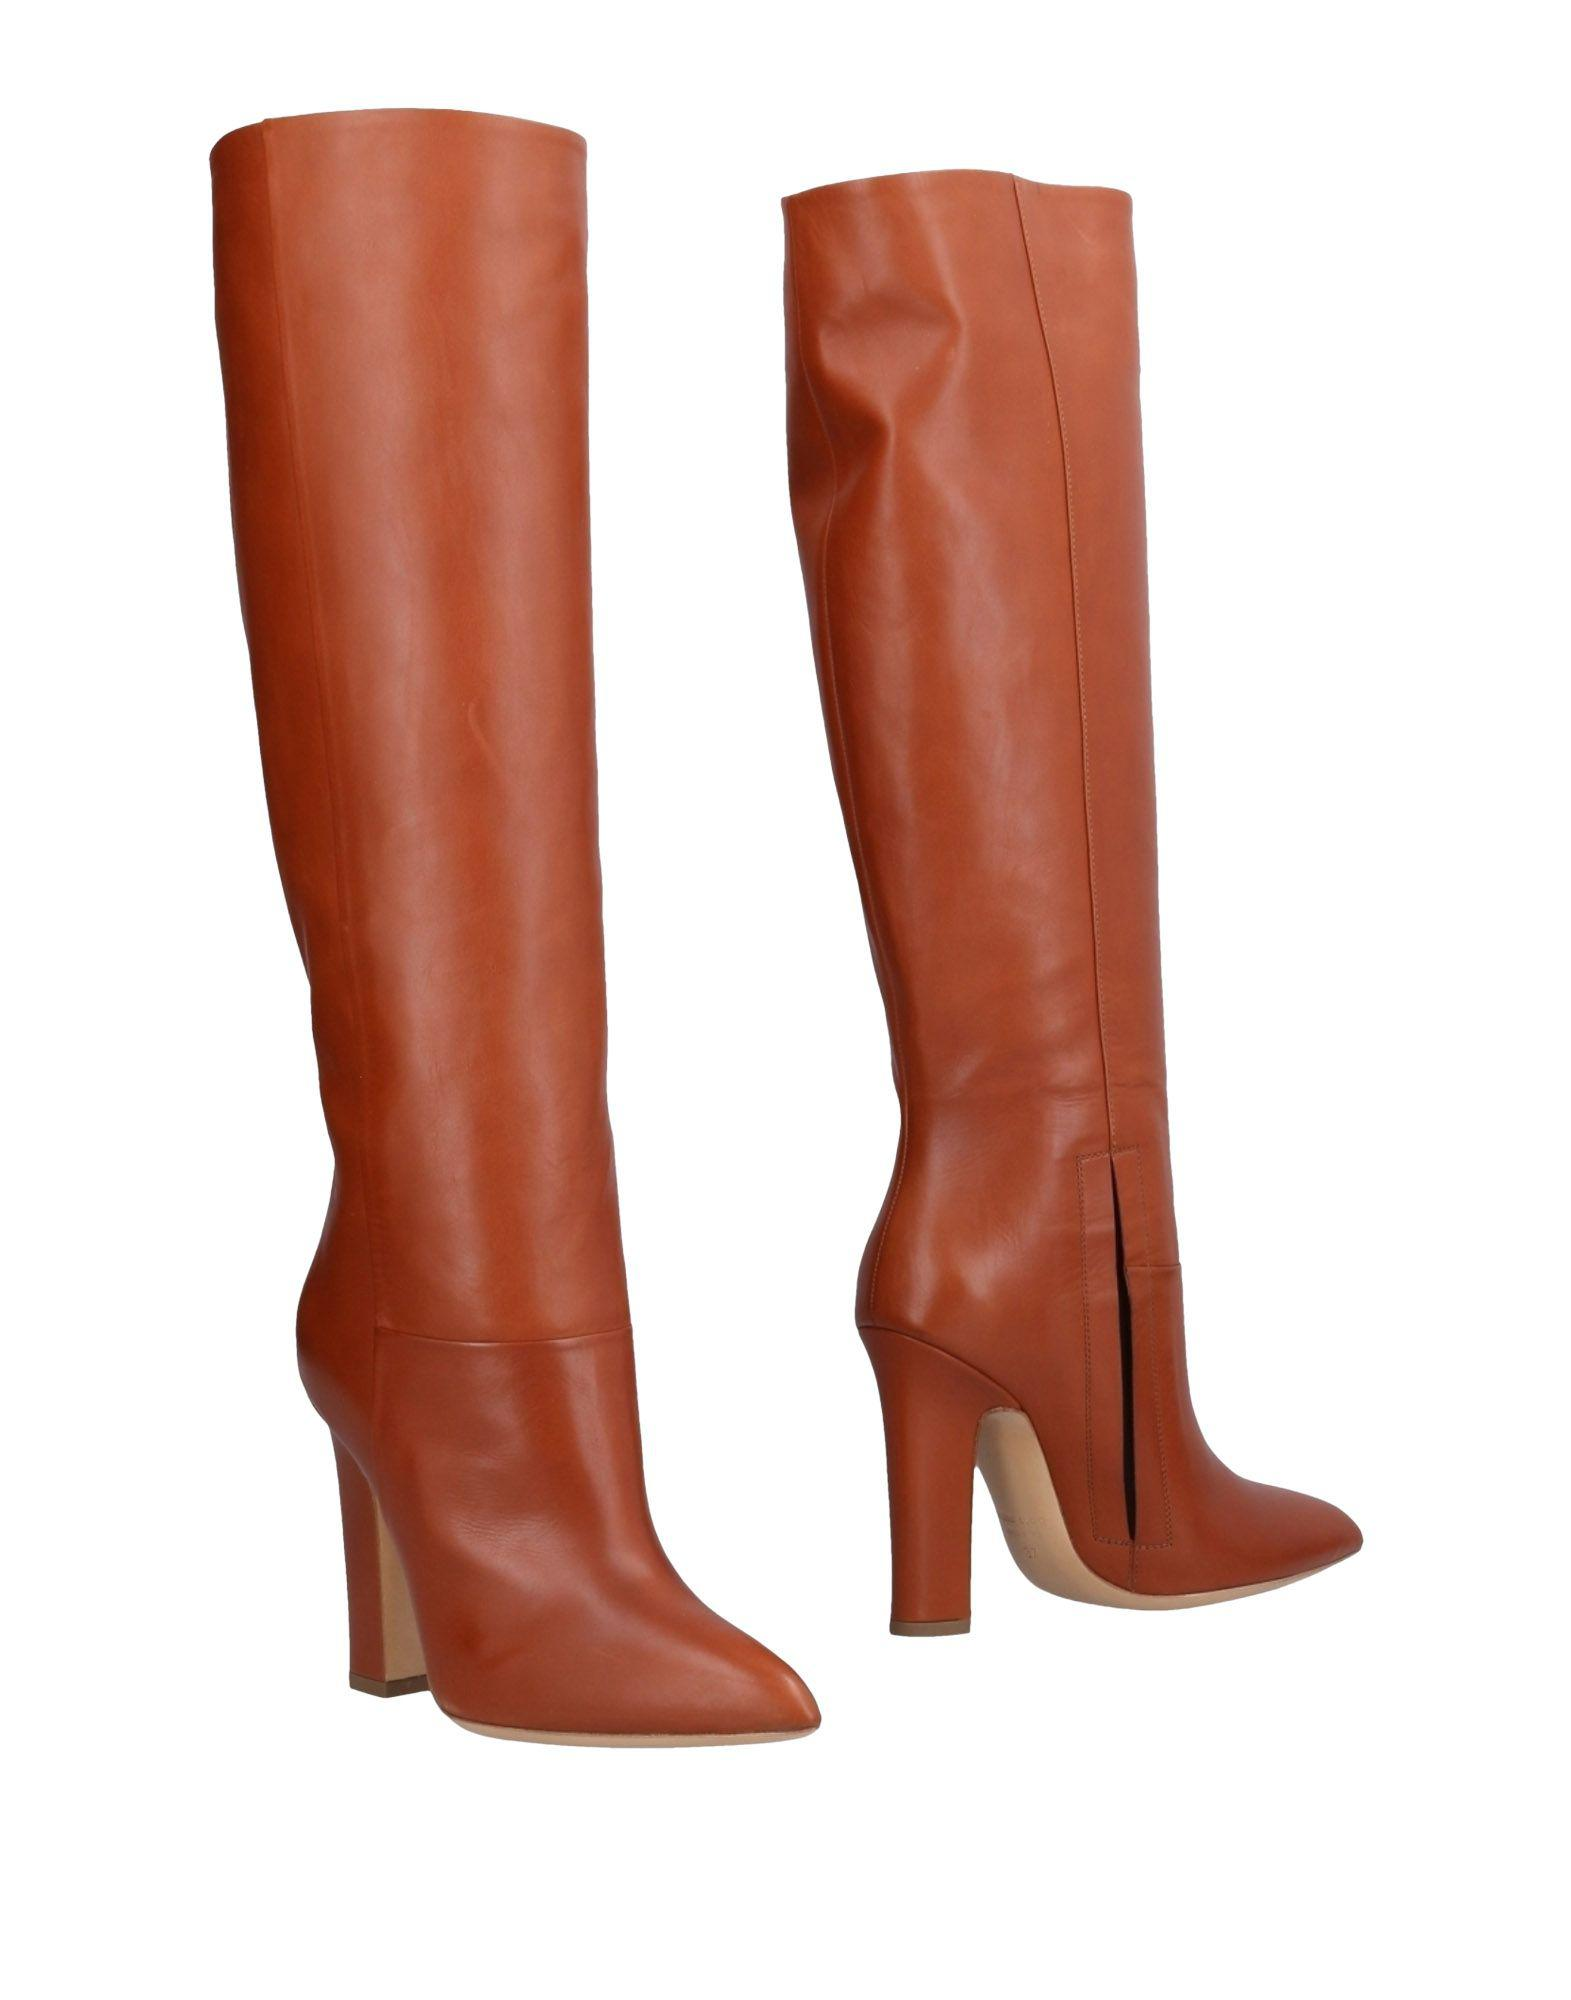 new product eed4c 0e1f6 Lyst - Deimille Boots in Brown